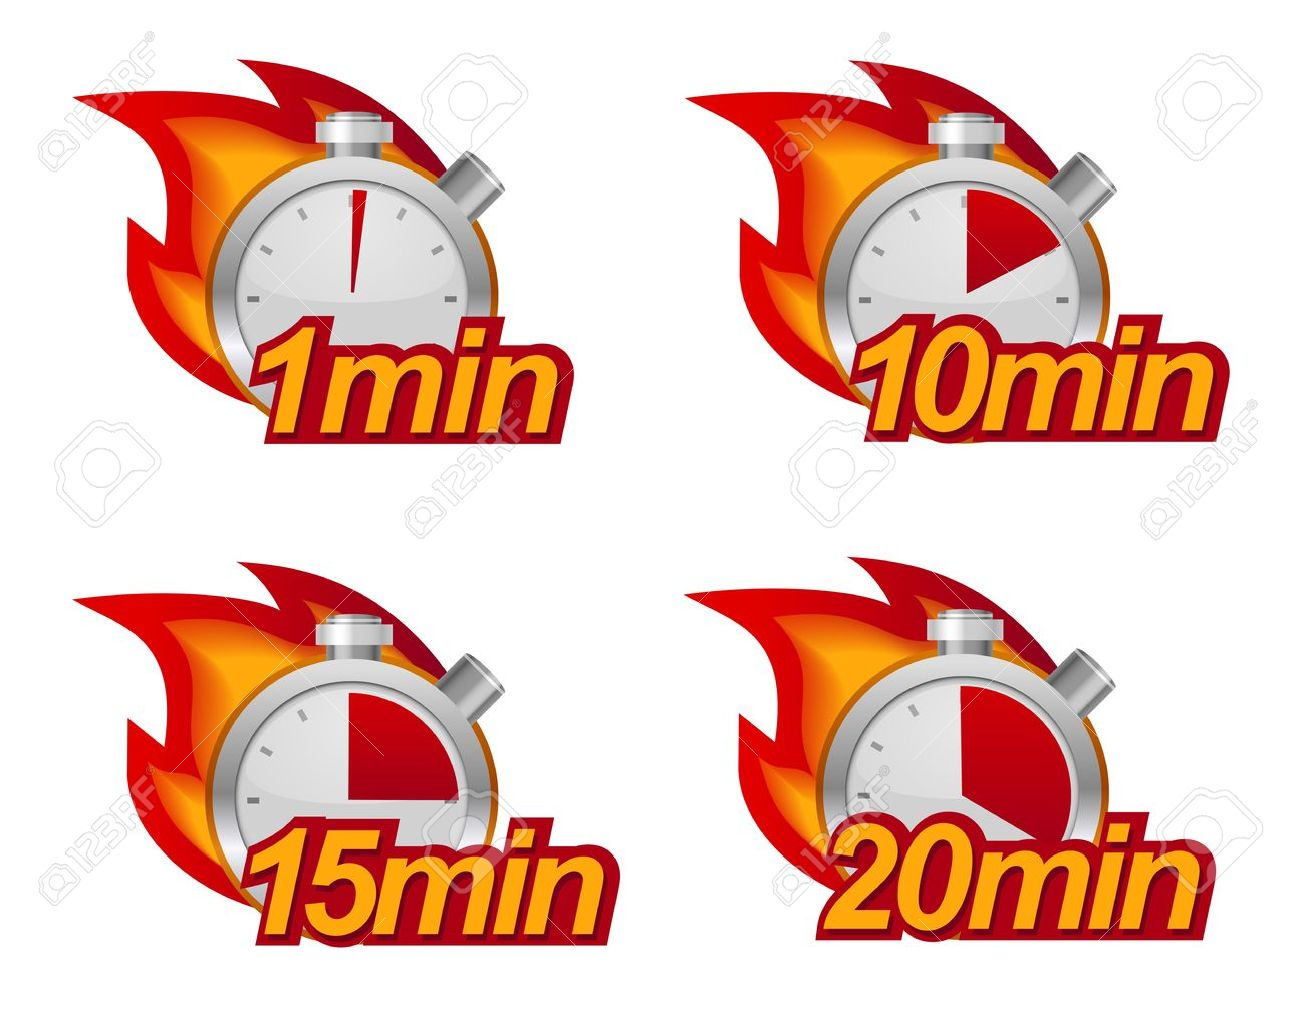 1 minute 10 minutes 15 and 20 minutes timers with fire on